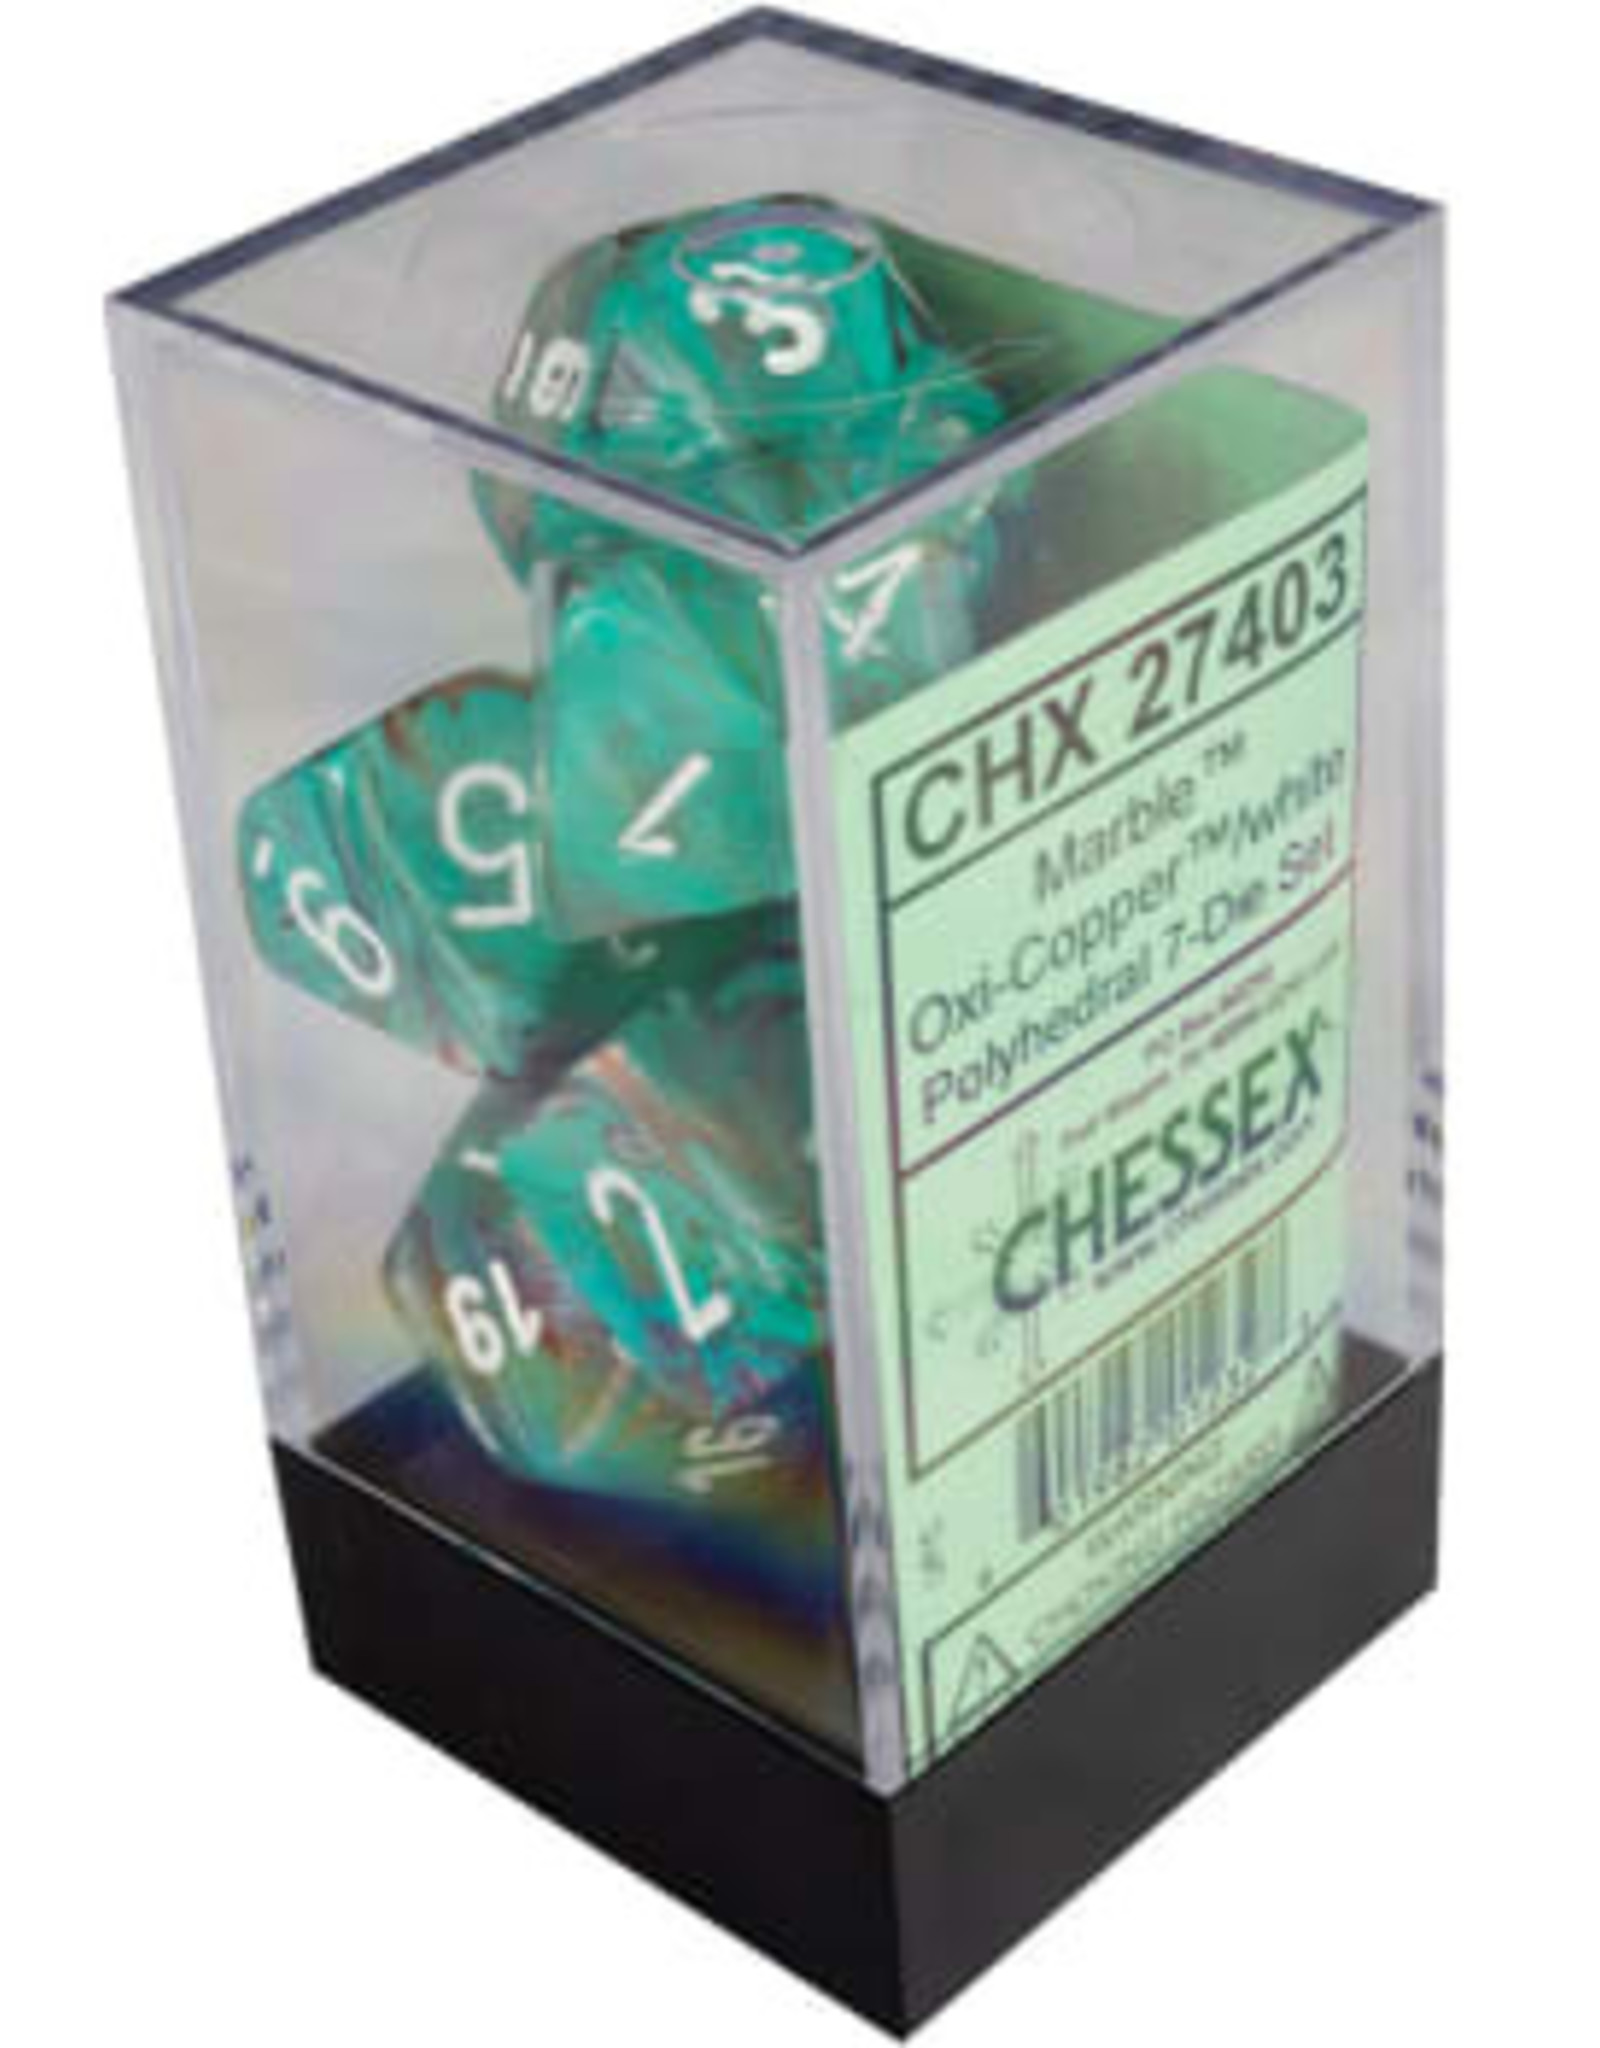 Chessex Marble Oxi-Copper/white Polyhedral Set